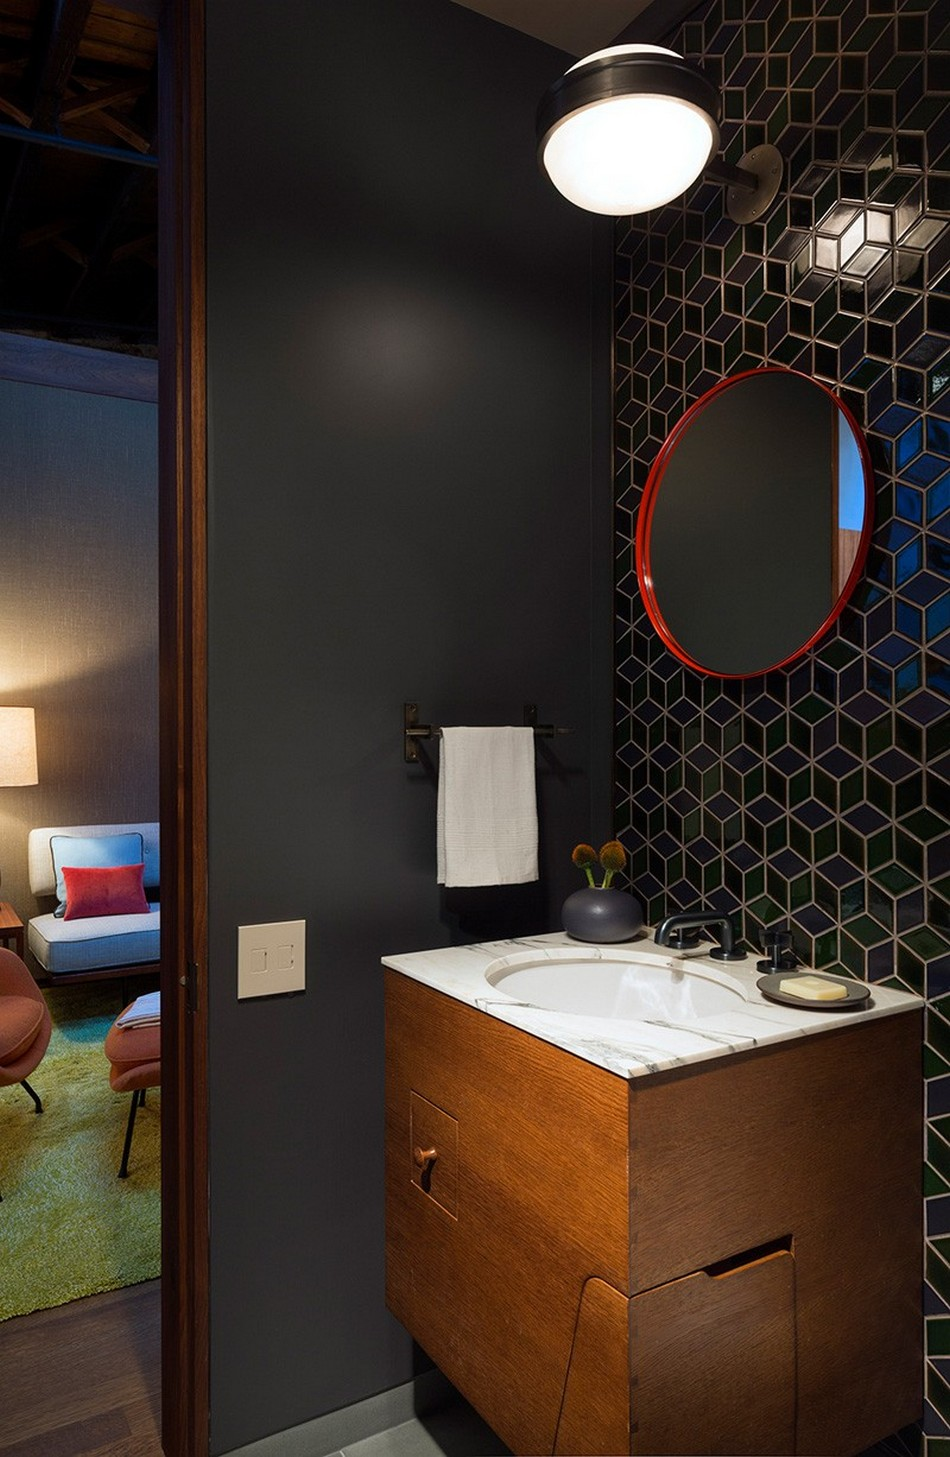 Dark decorated bathroom with the red frame of the mirror